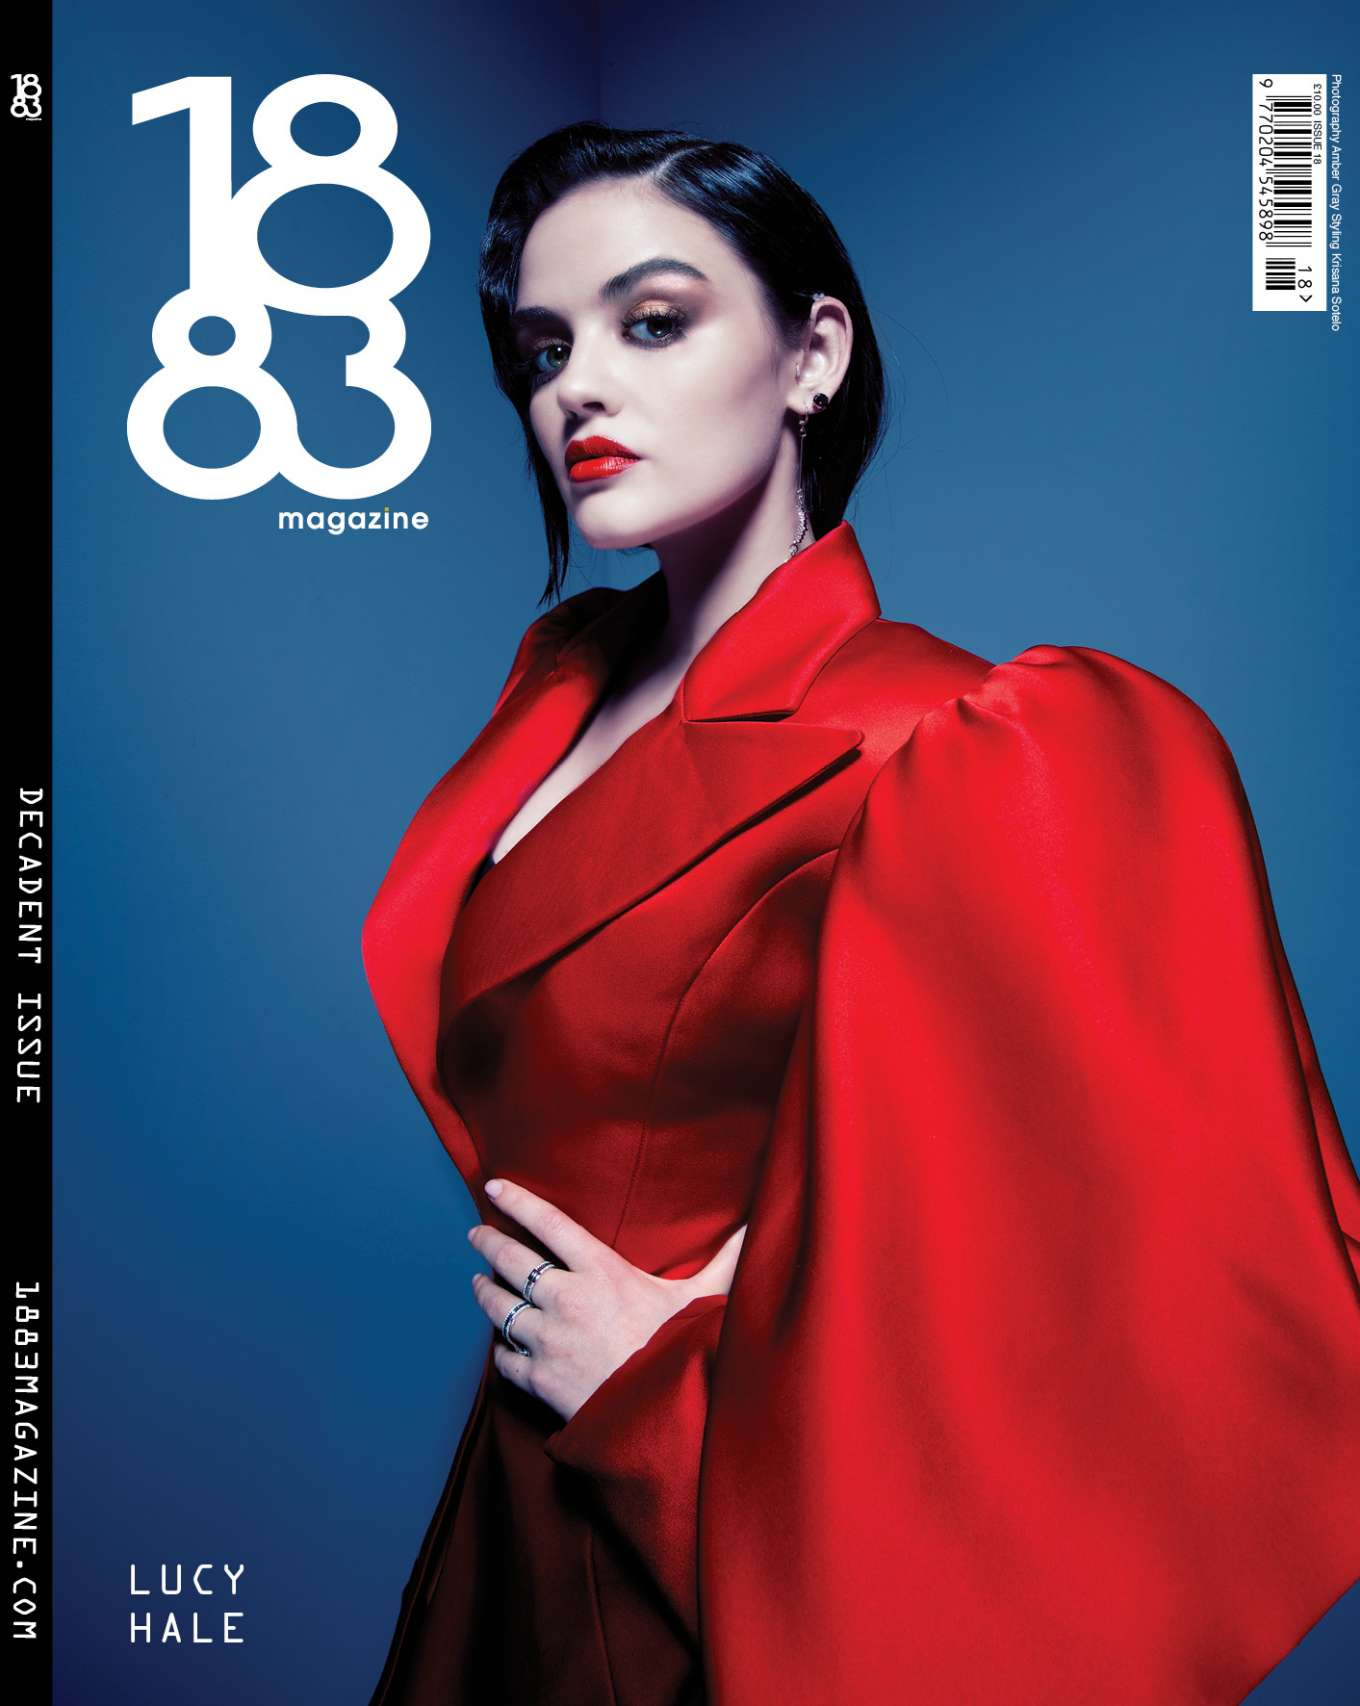 Lucy Hale 2020 : Lucy Hale – 1883 Magazine 2020-01